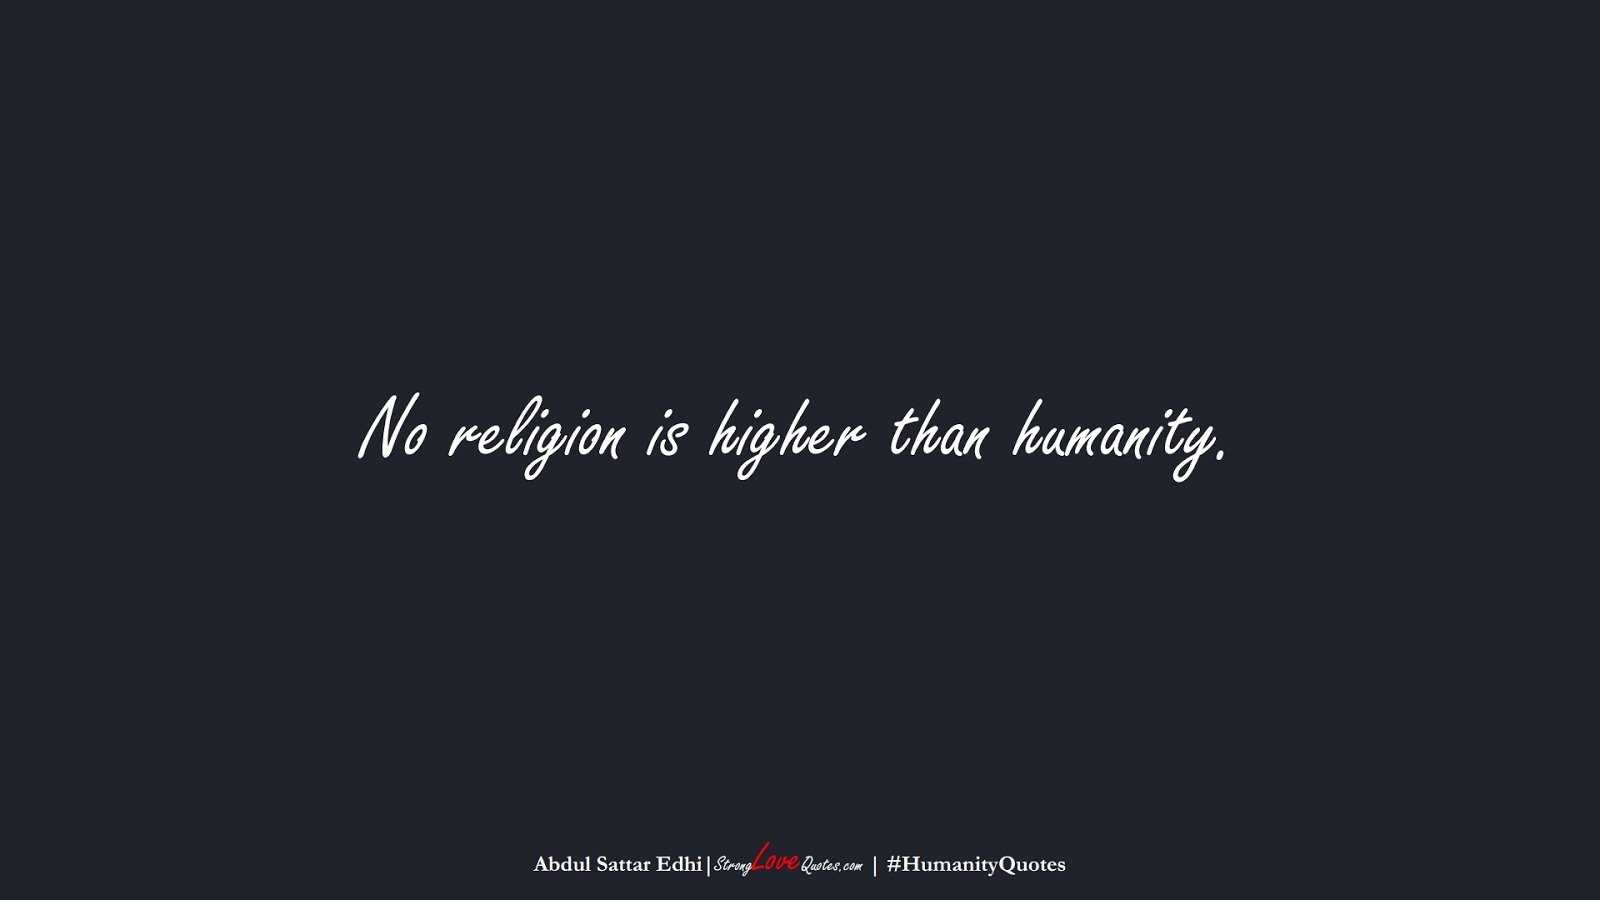 No religion is higher than humanity. (Abdul Sattar Edhi);  #HumanityQuotes